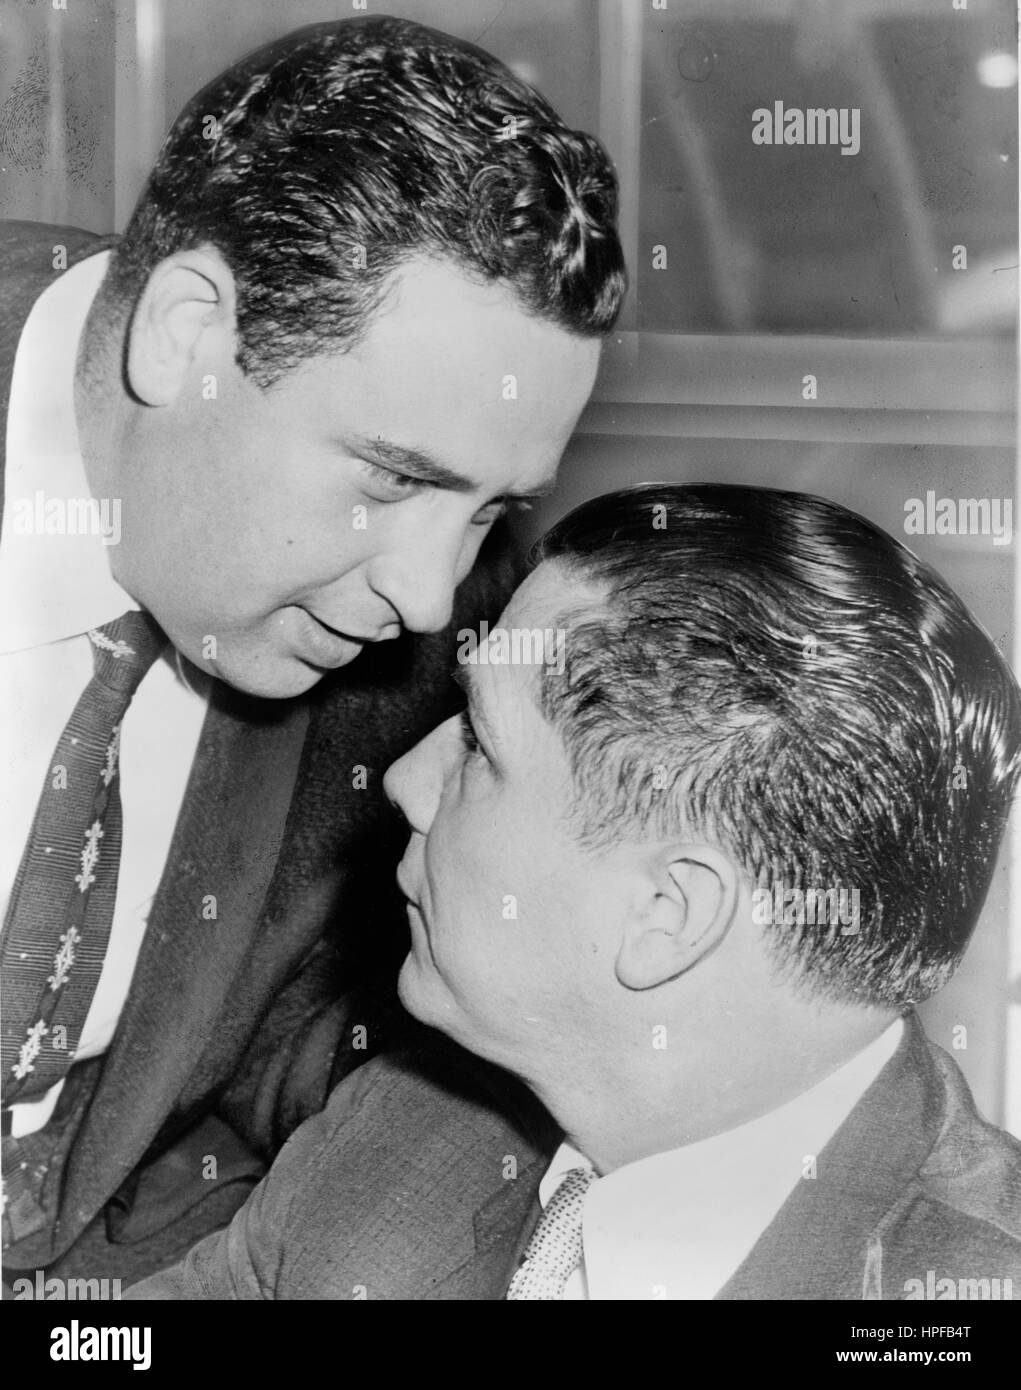 Wiretap expert Bernard Spindel whispers in ear of James R Hoffa after court session in which they pleaded innocent - Stock Image